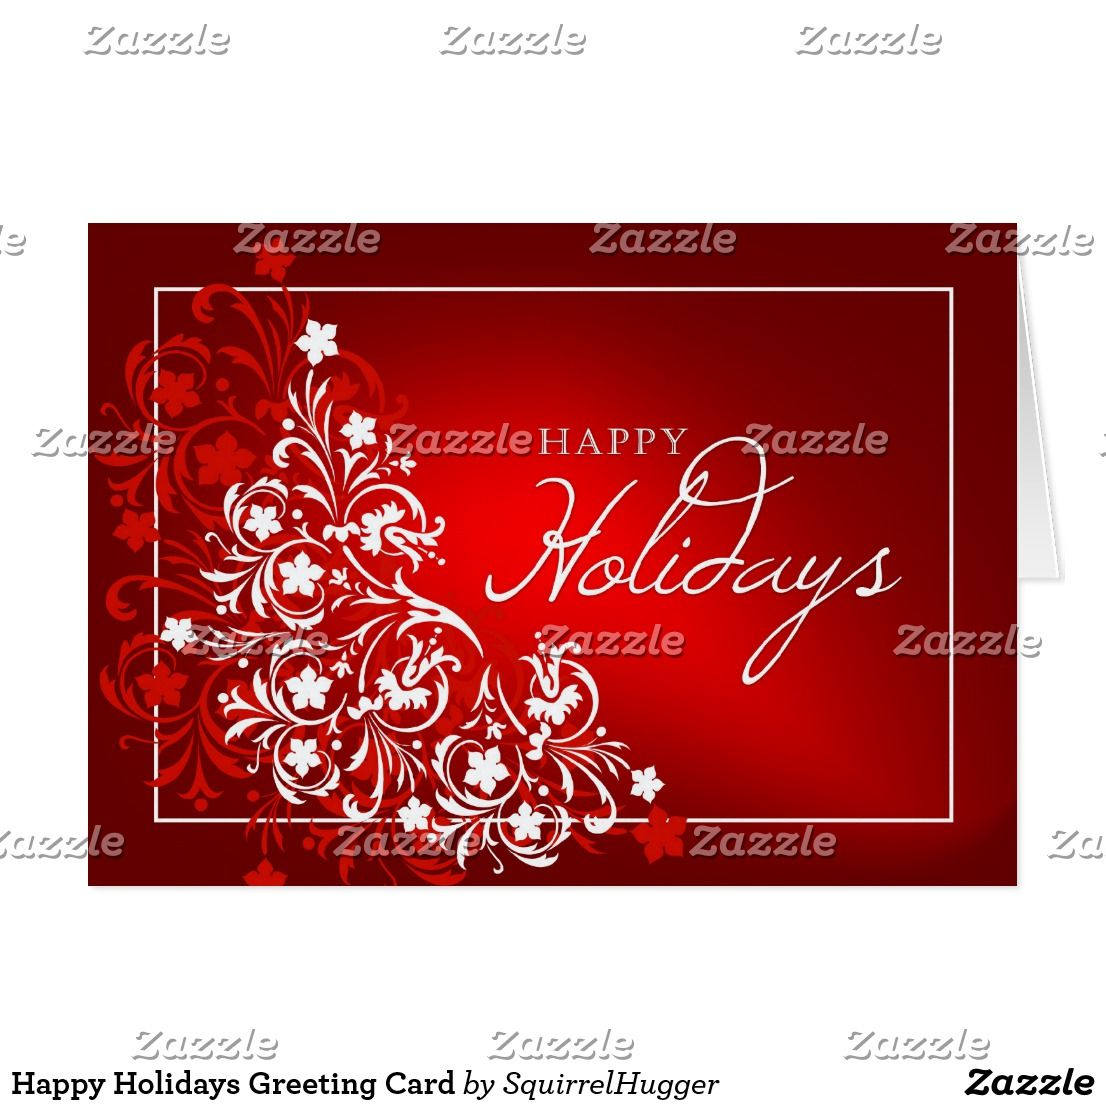 Happy holidays greeting card abstract holiday floral design on happy holidays greeting card abstract holiday floral design on gradient red background perfect for business kristyandbryce Image collections